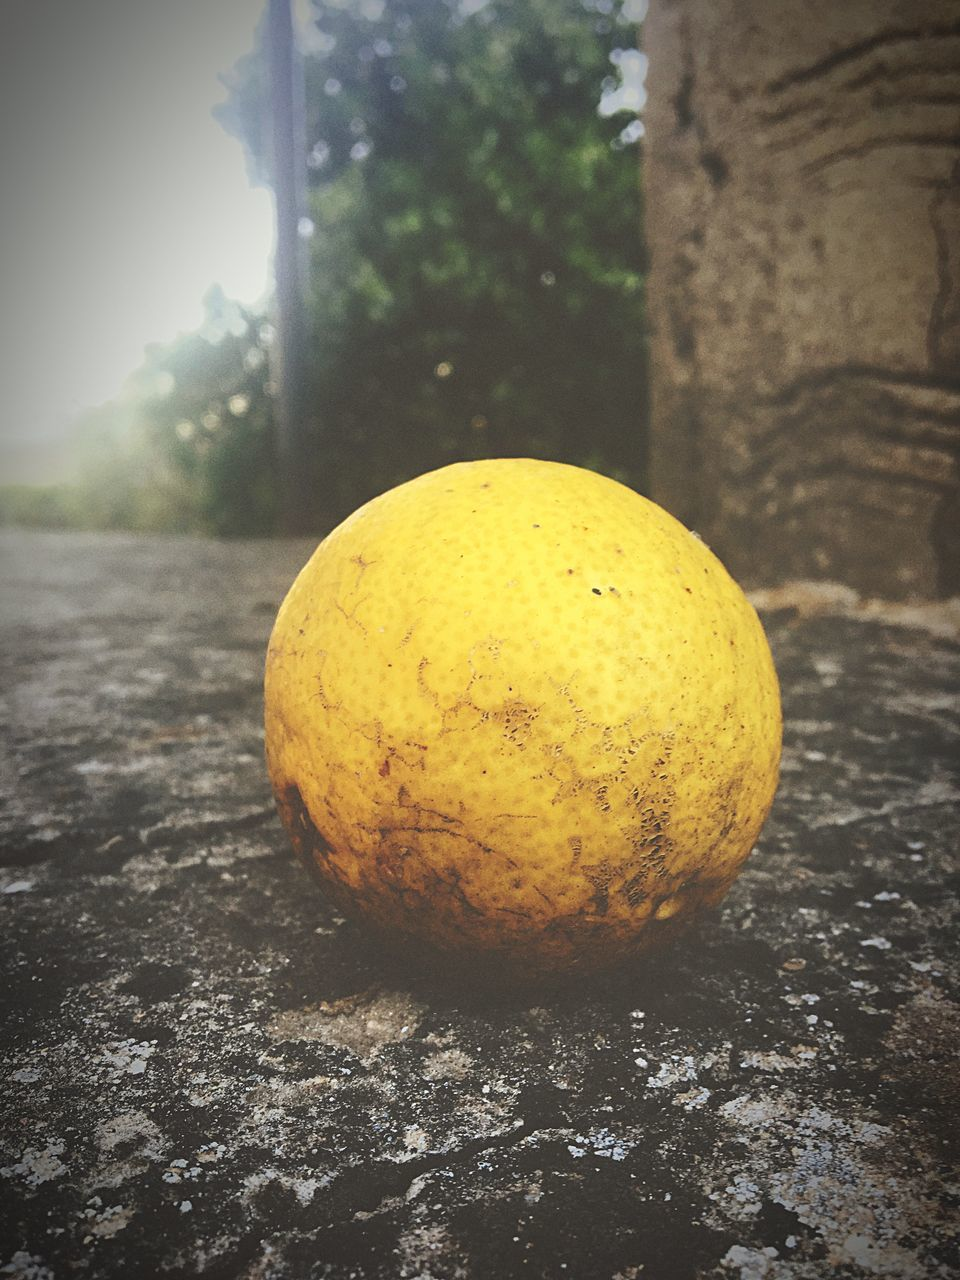 fruit, food and drink, healthy eating, food, yellow, no people, freshness, citrus fruit, close-up, day, tree, outdoors, rotting, nature